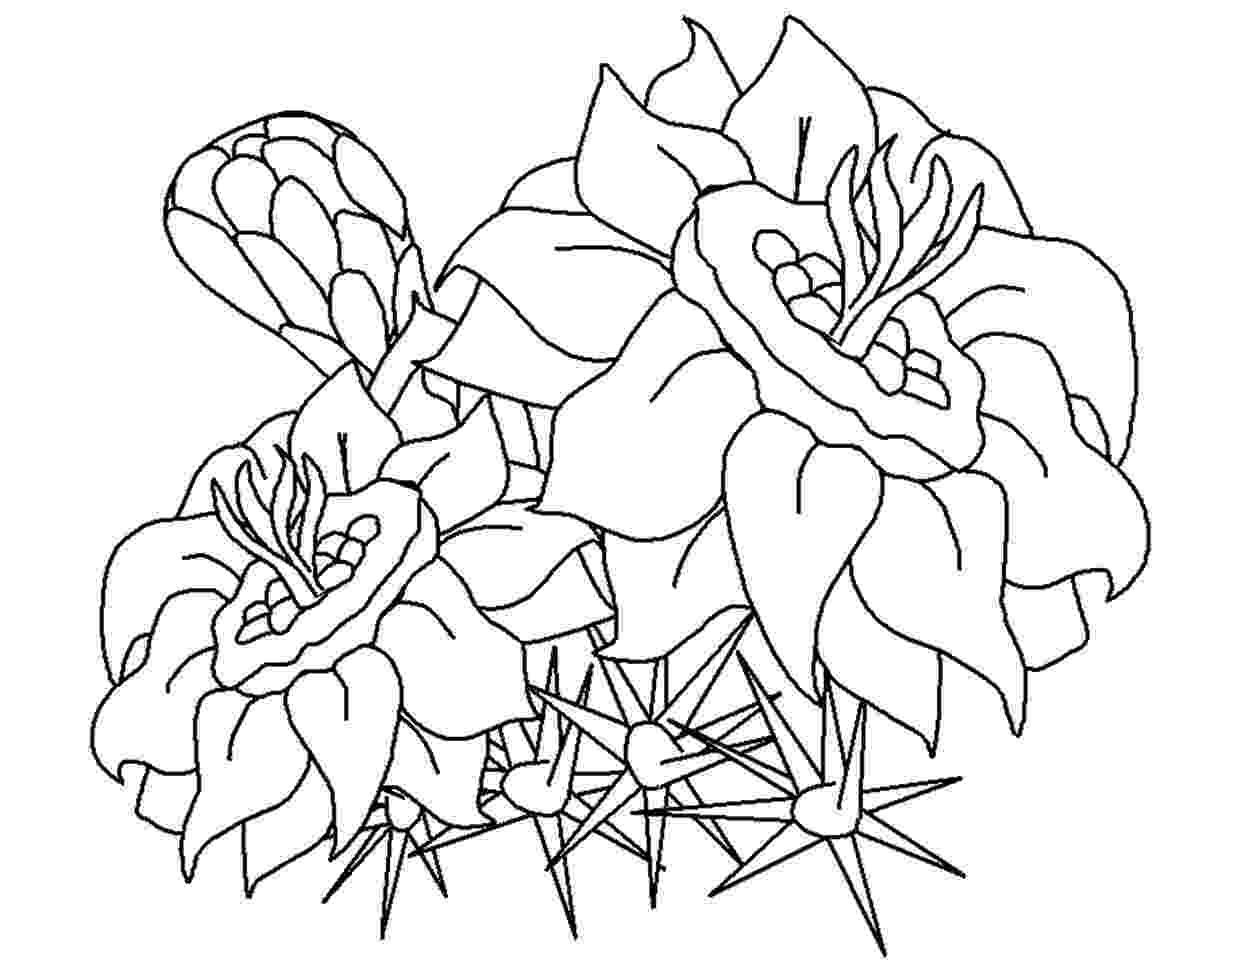 flowers to print and colour flower page printable coloring sheets page flowers print and to colour flowers